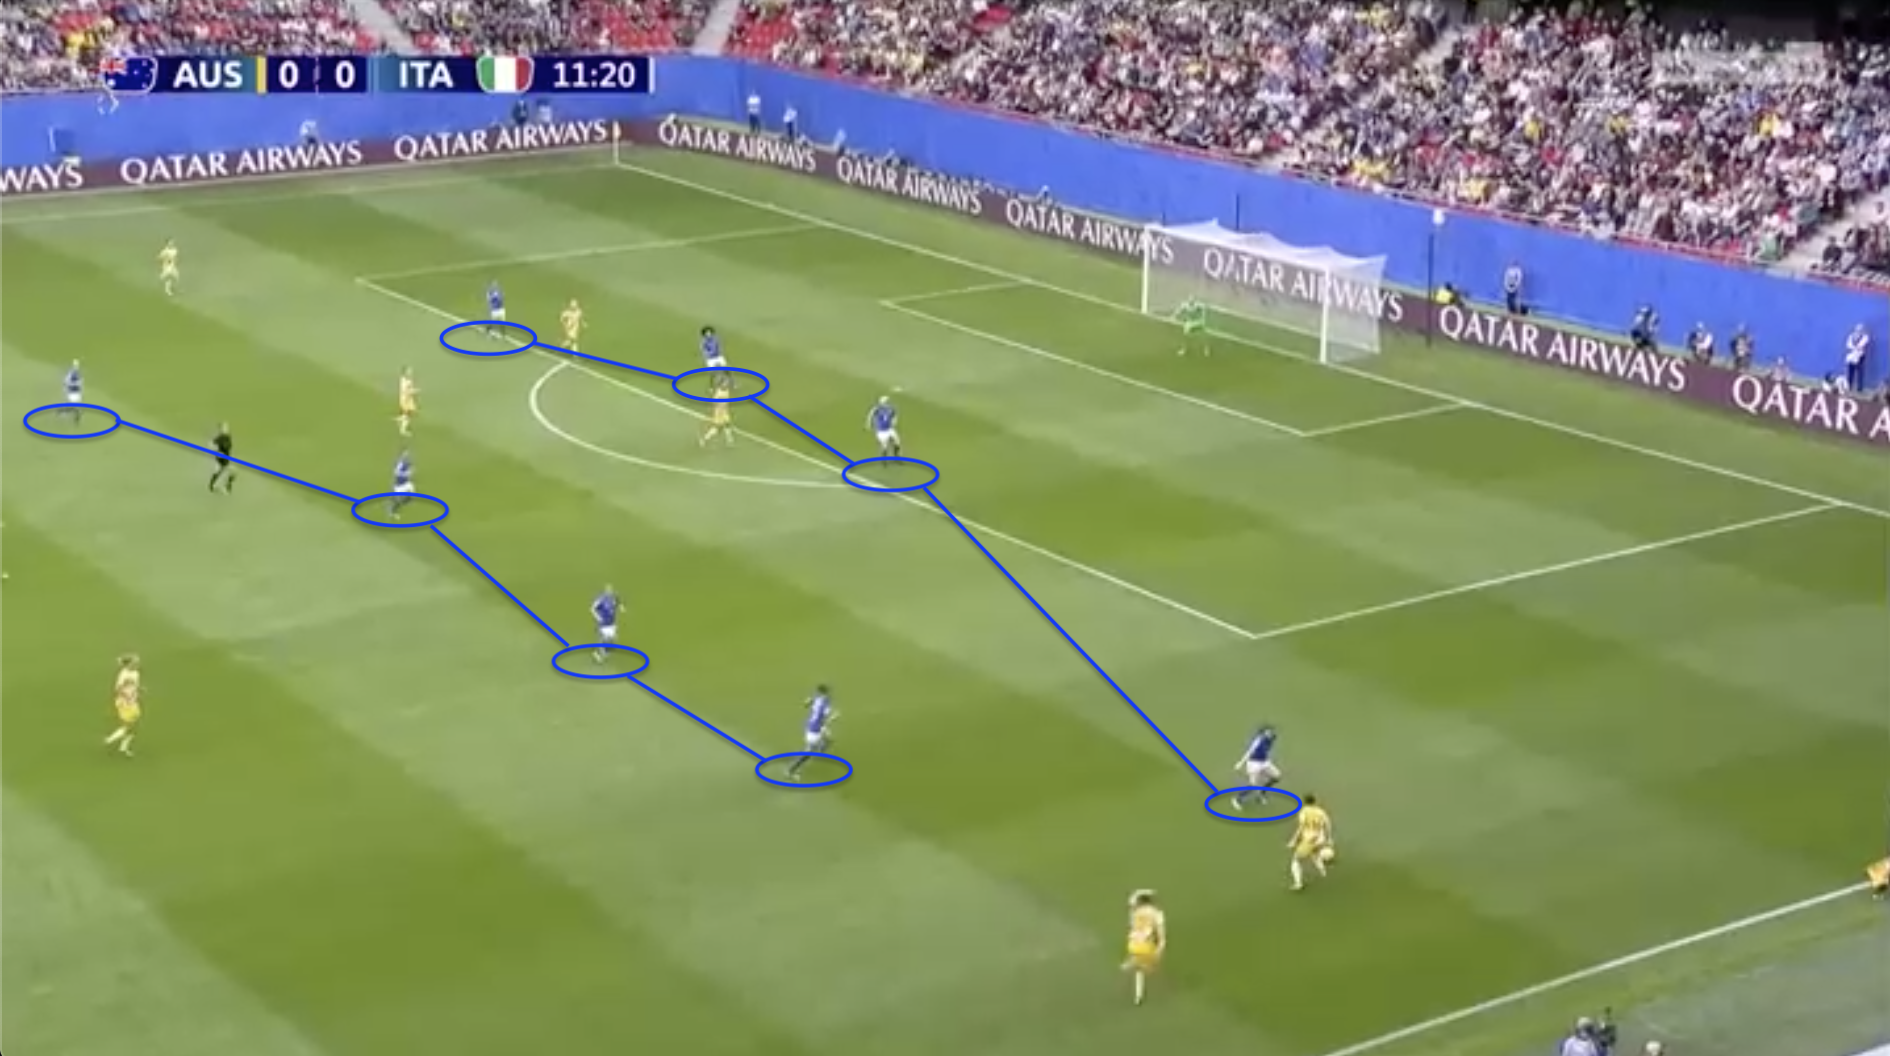 FIFA Women's World Cup 2019 Tactical Preview: Jamaica vs Italy